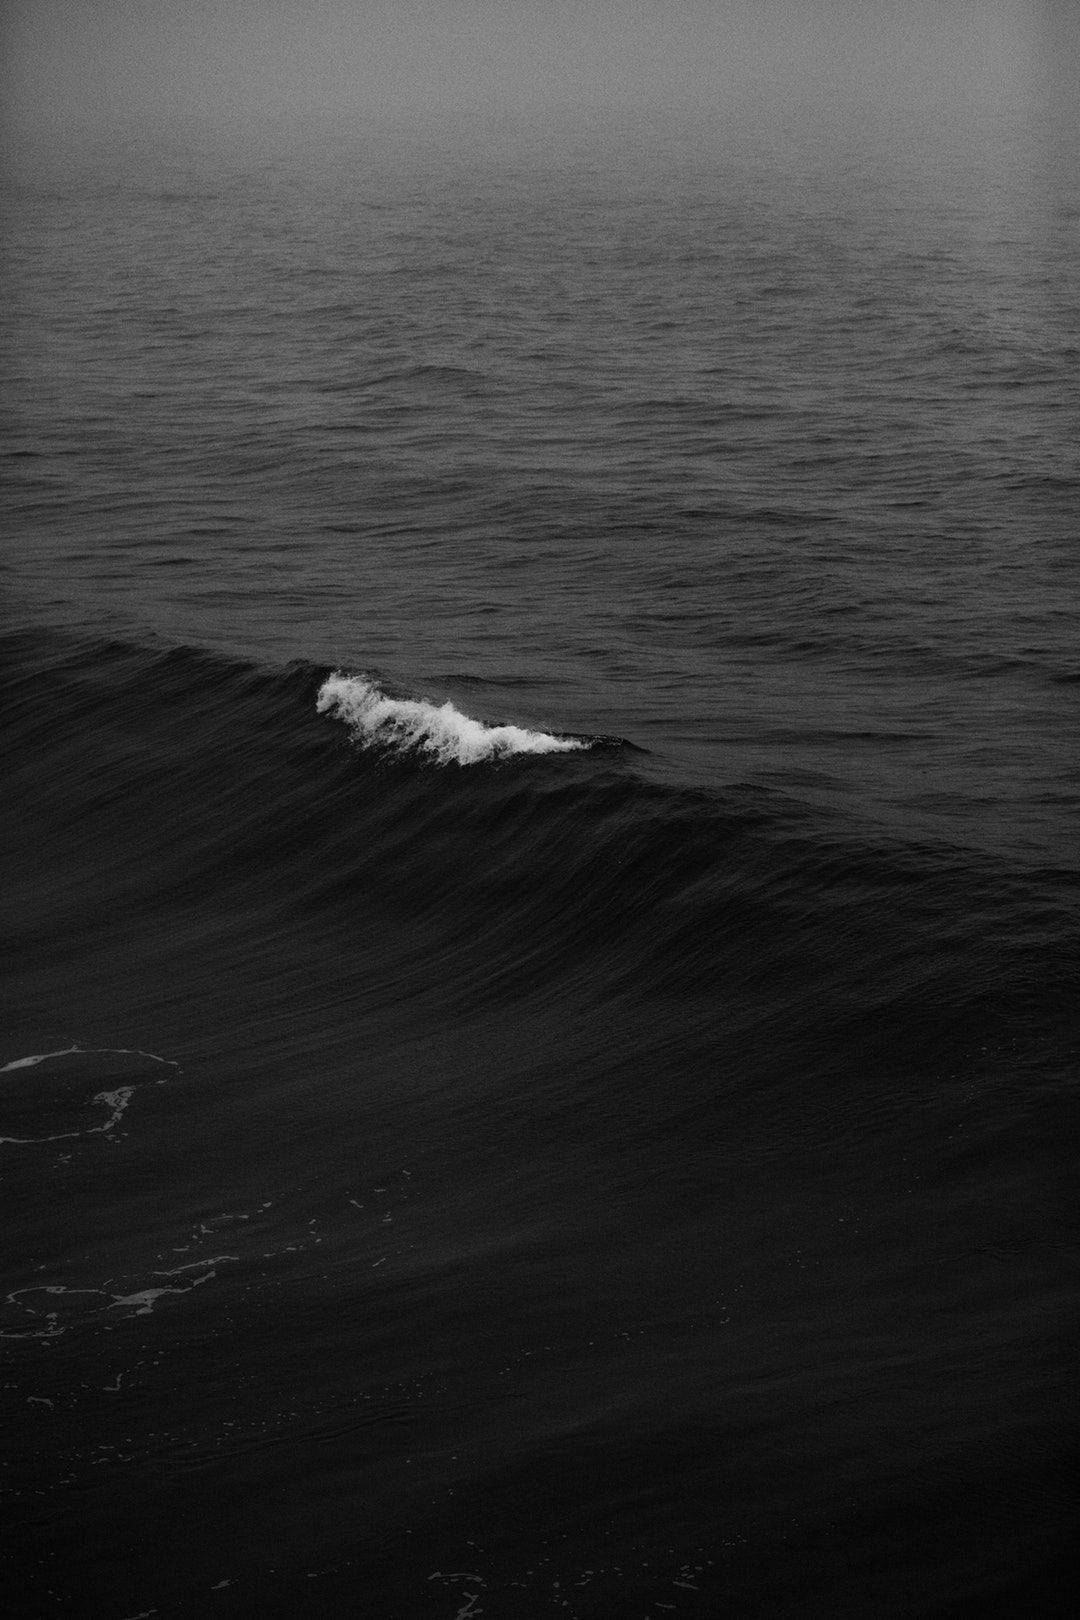 Download This Free Hd Photo Of Black And White Wave Ocean And Sea In Manhattan Beach Un Iphone Wallpaper Night Dark Phone Wallpapers Dark Iphone Backgrounds